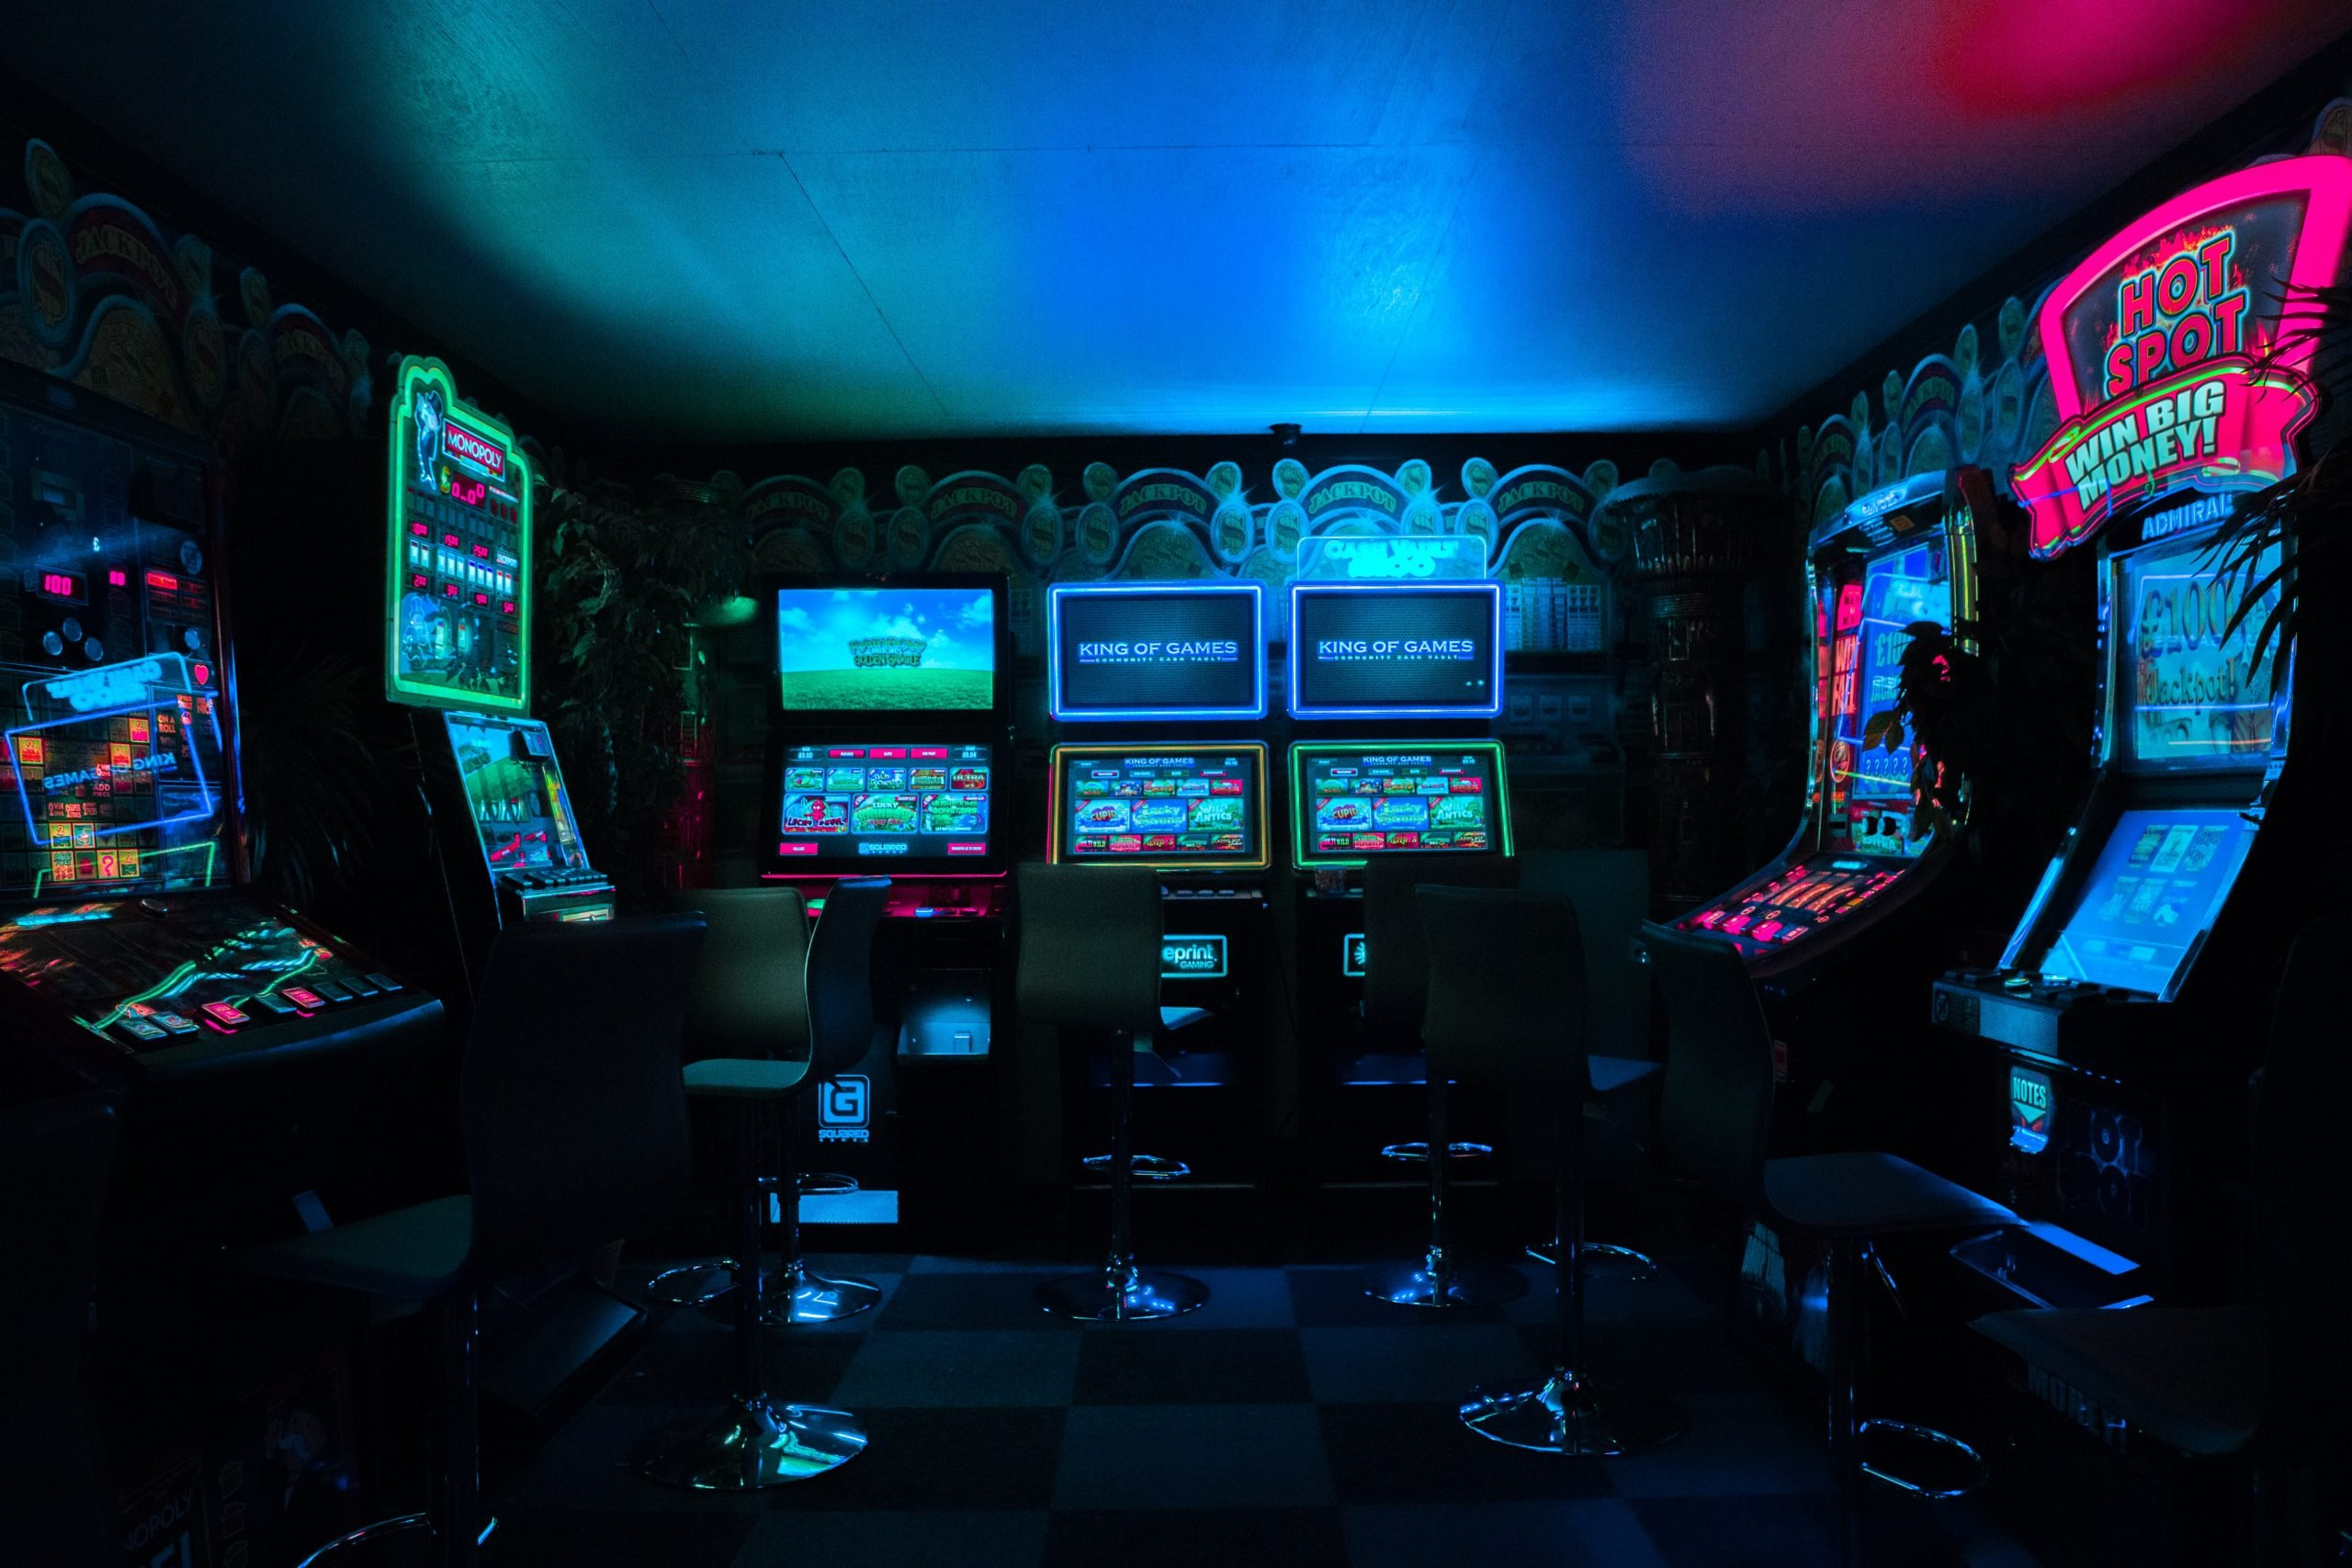 wallpaper Gaming room with arcade machines